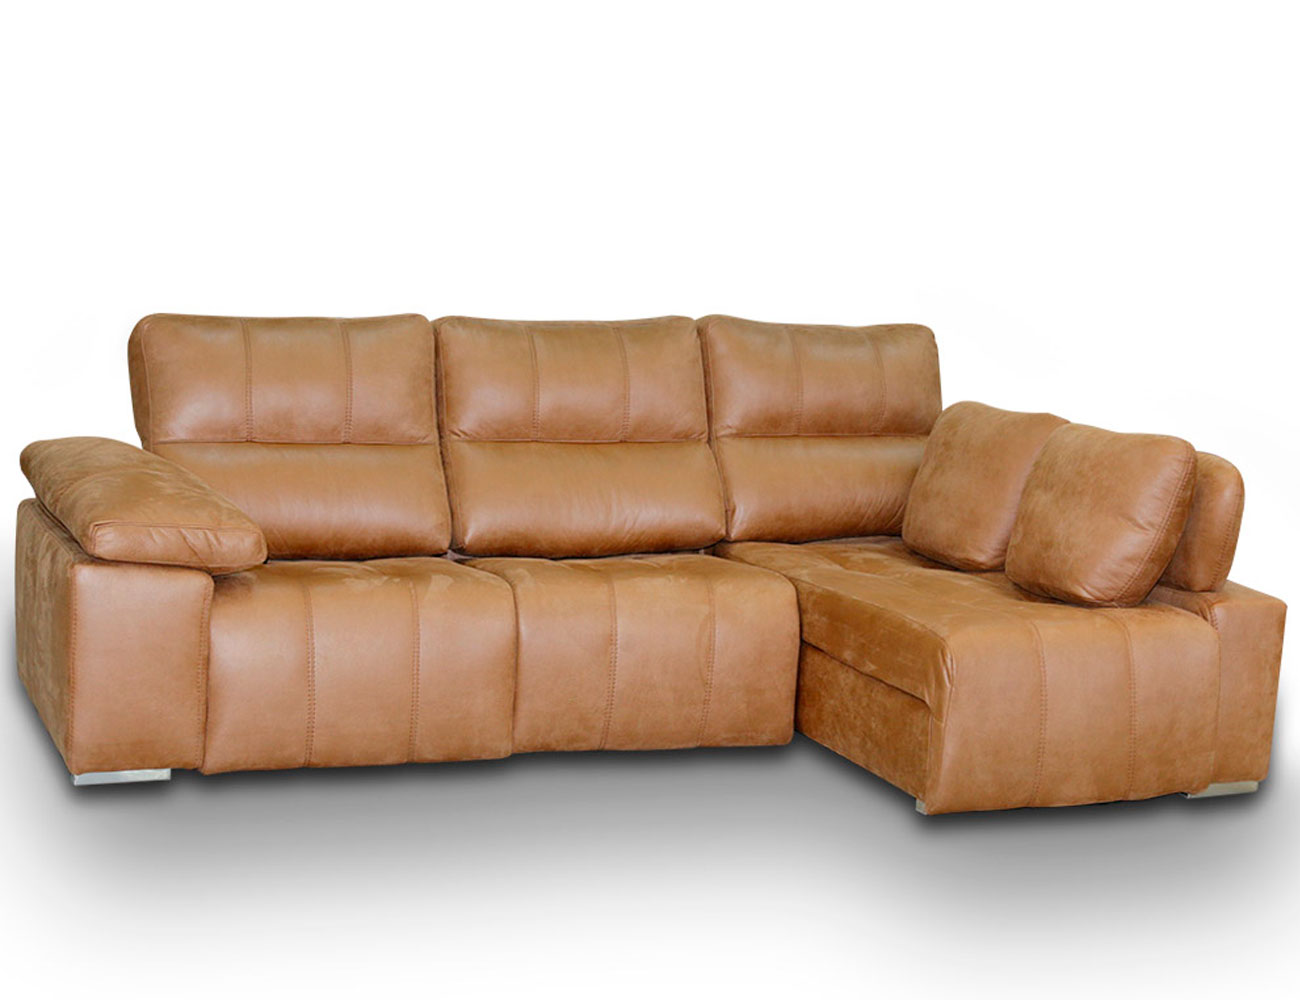 Sofa chaiselongue relax 2 motores anti manchas33